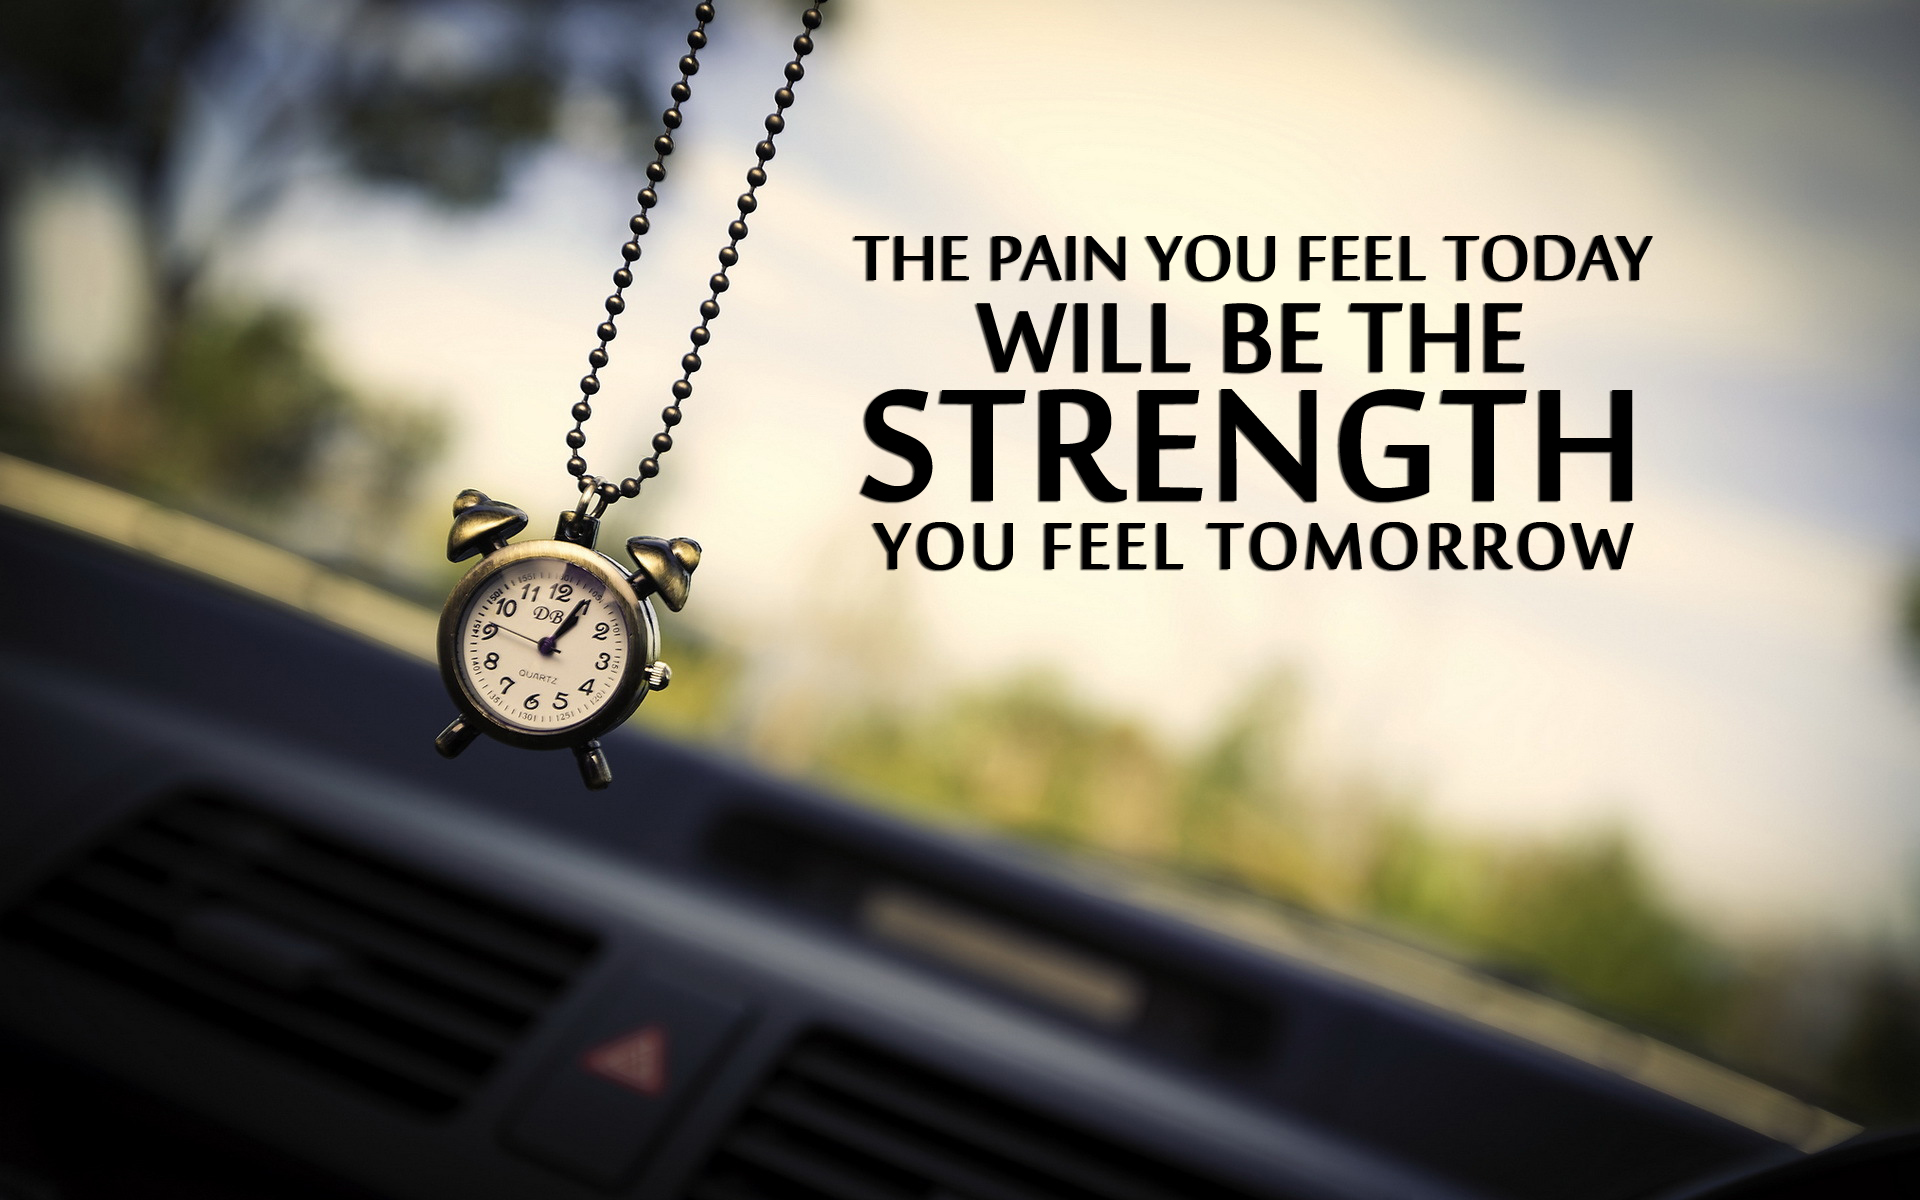 Amazing Inspirational Quotes HD Wallpaper Background